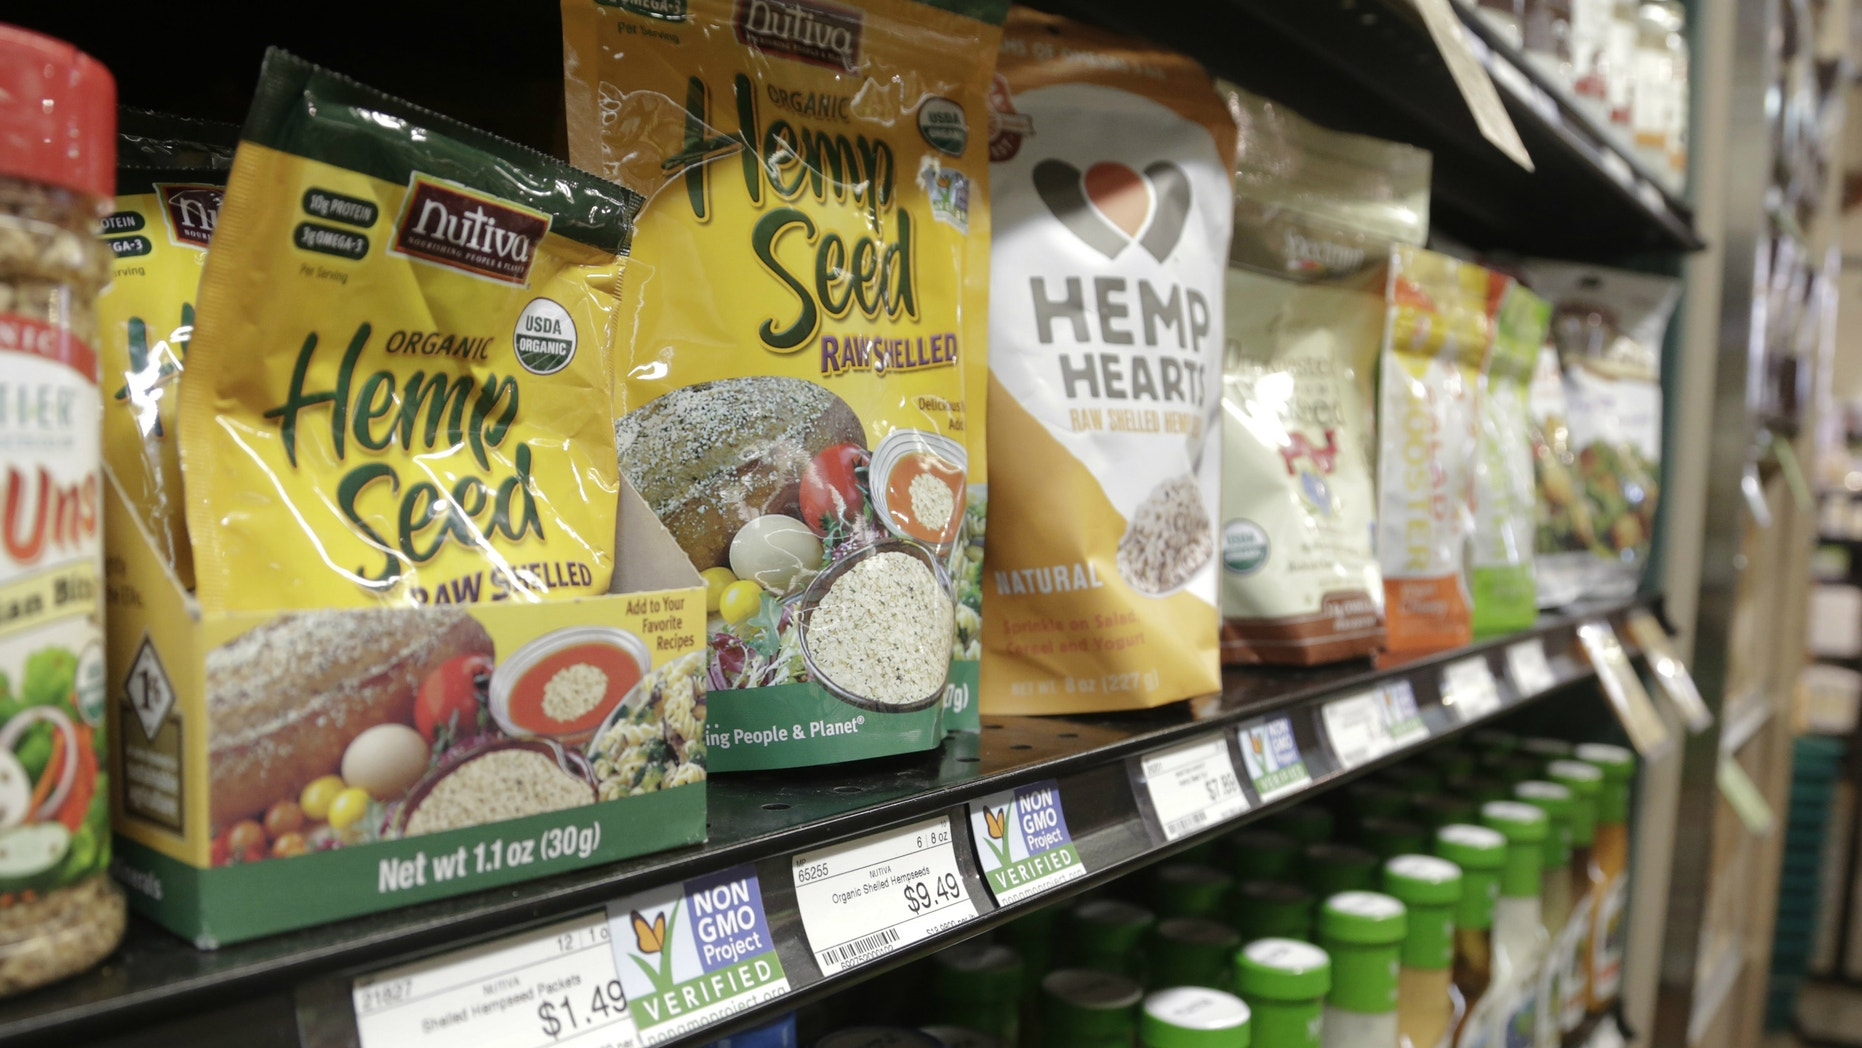 Labels point out products verified to not contain genetically modified organisms (GMO).